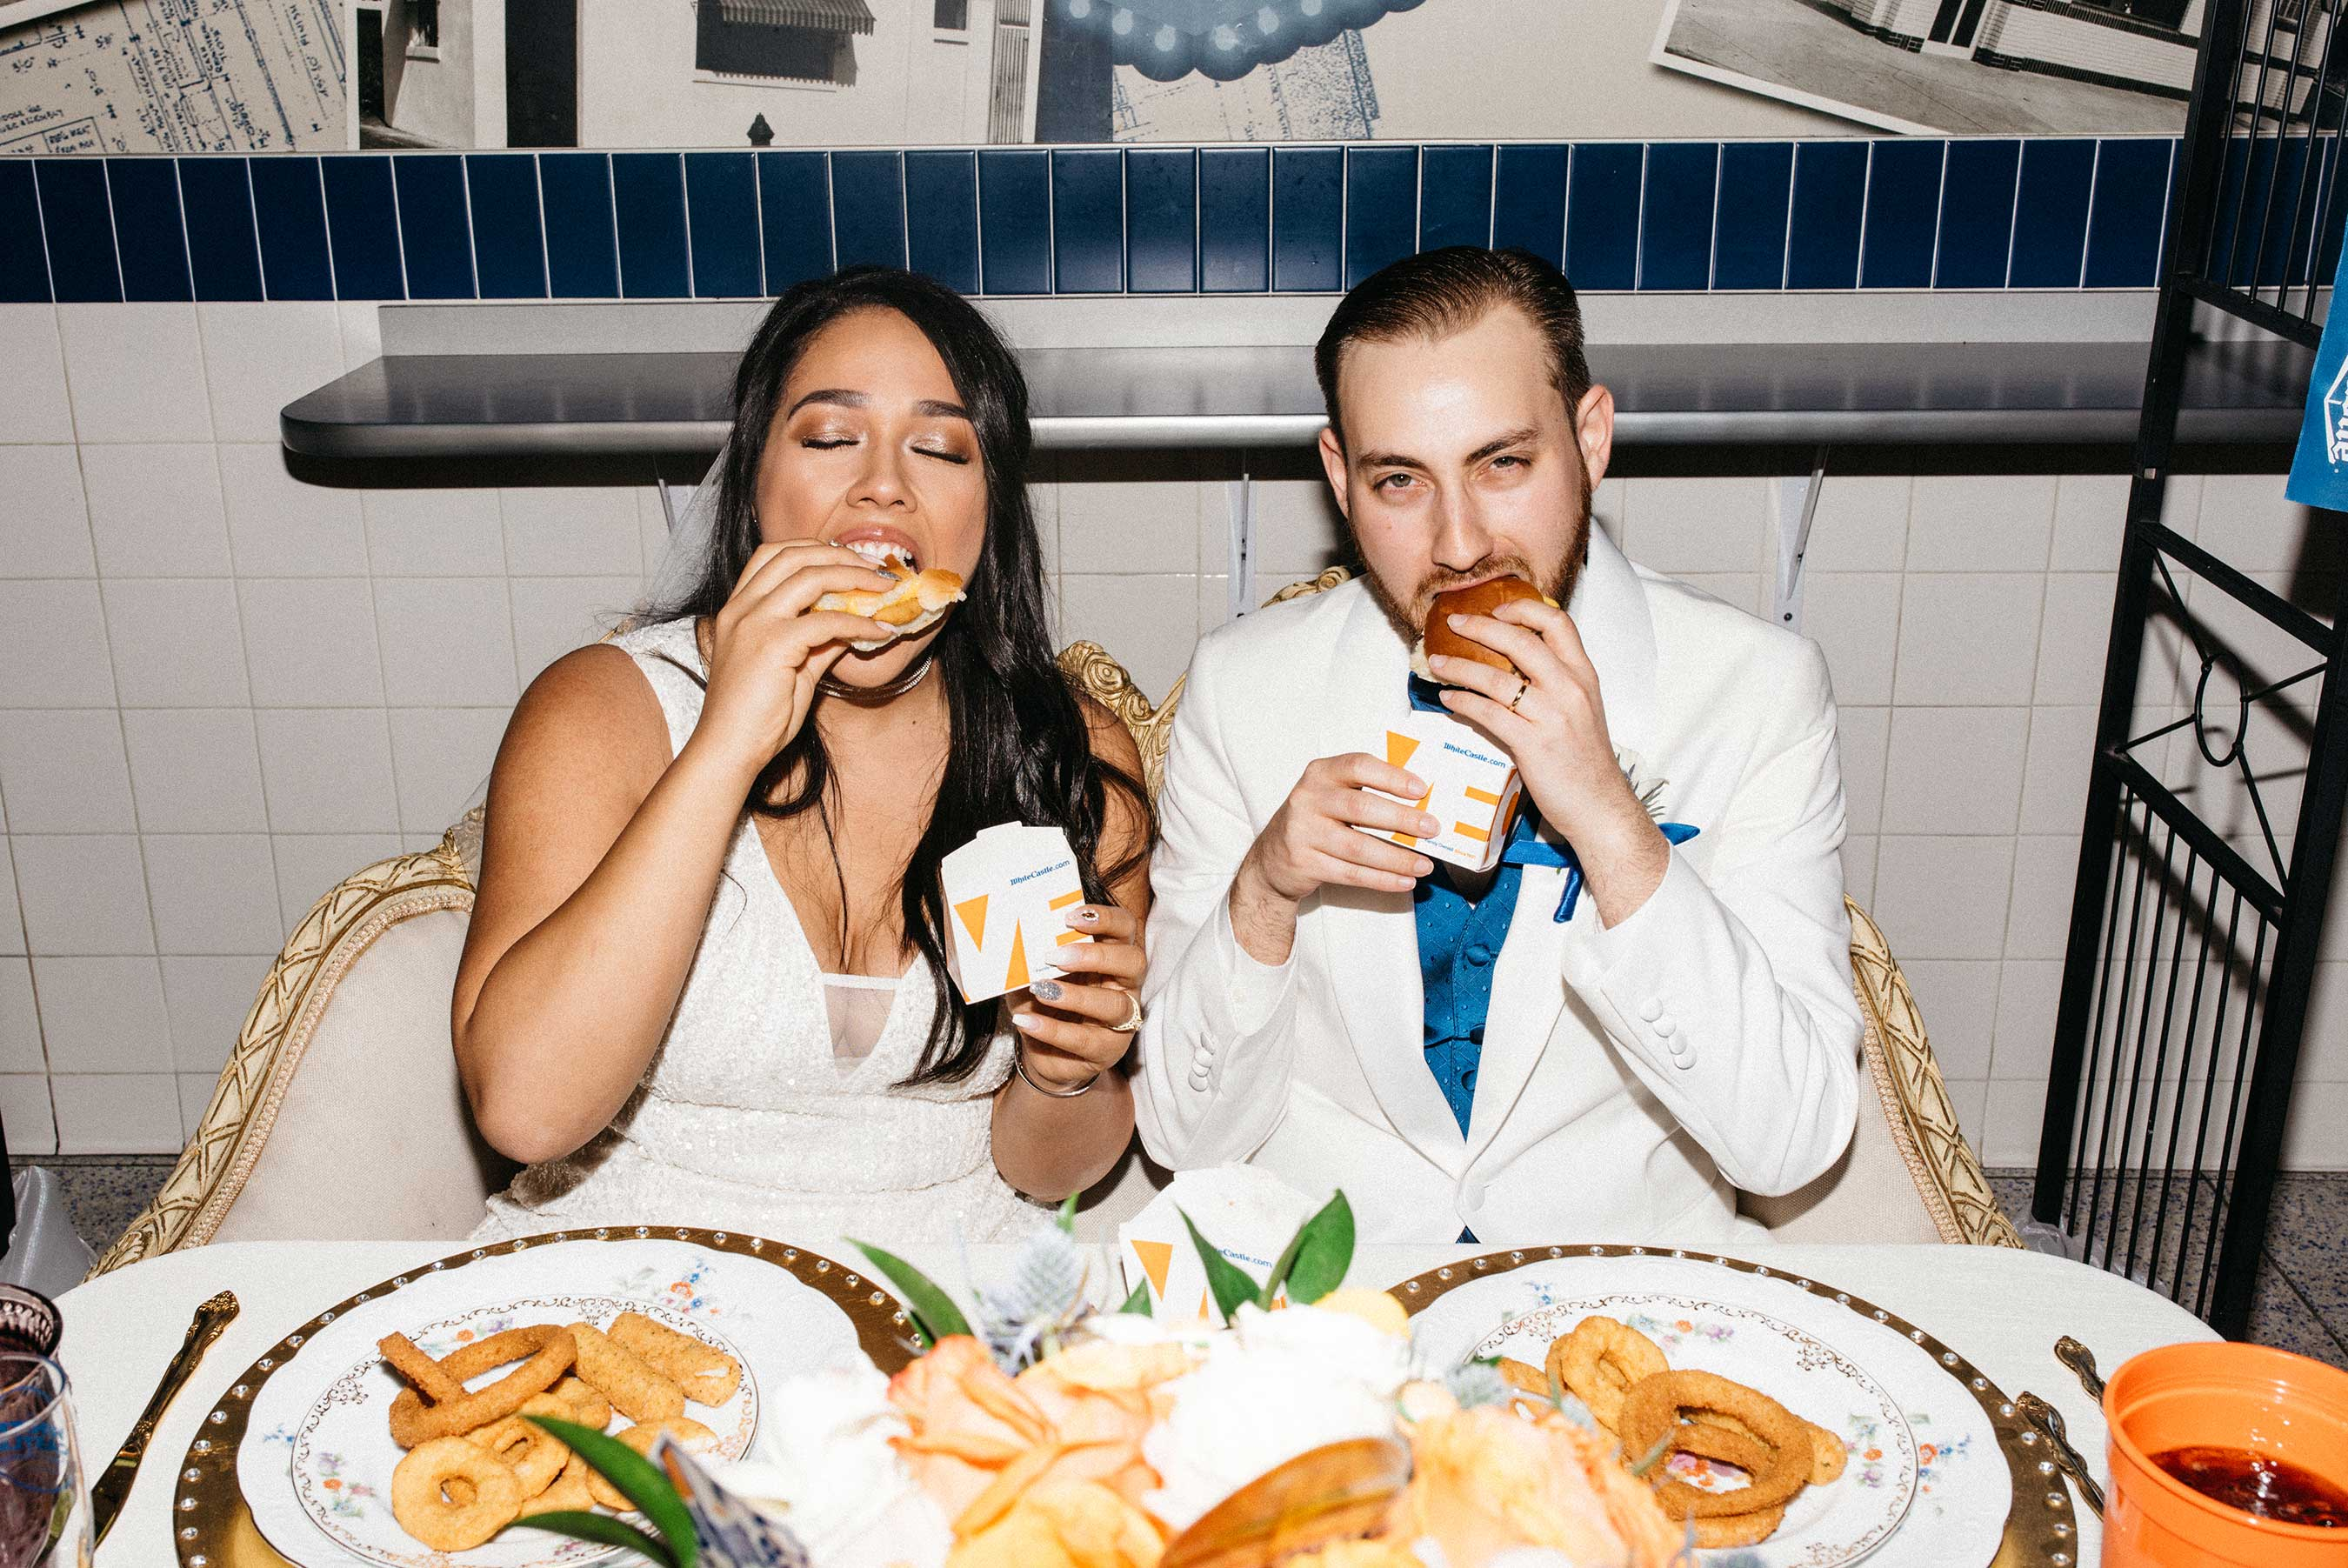 Sliders are for lovers. Obviously, the event was catered with White Castle fare.